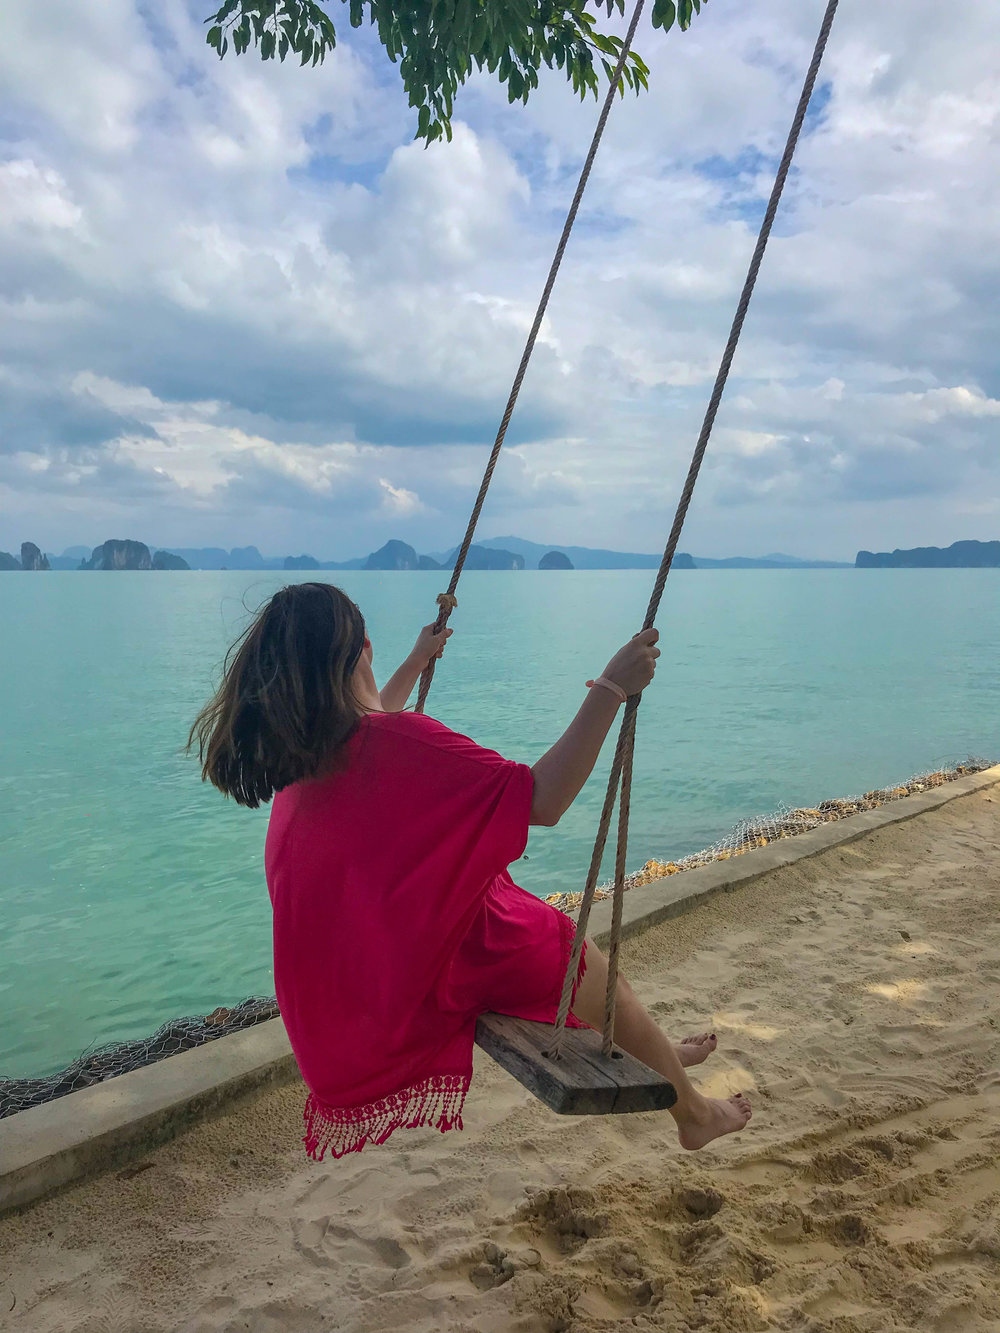 Thailand Cape Kudu Hotel Koh Yao Noi - beach swing with a view